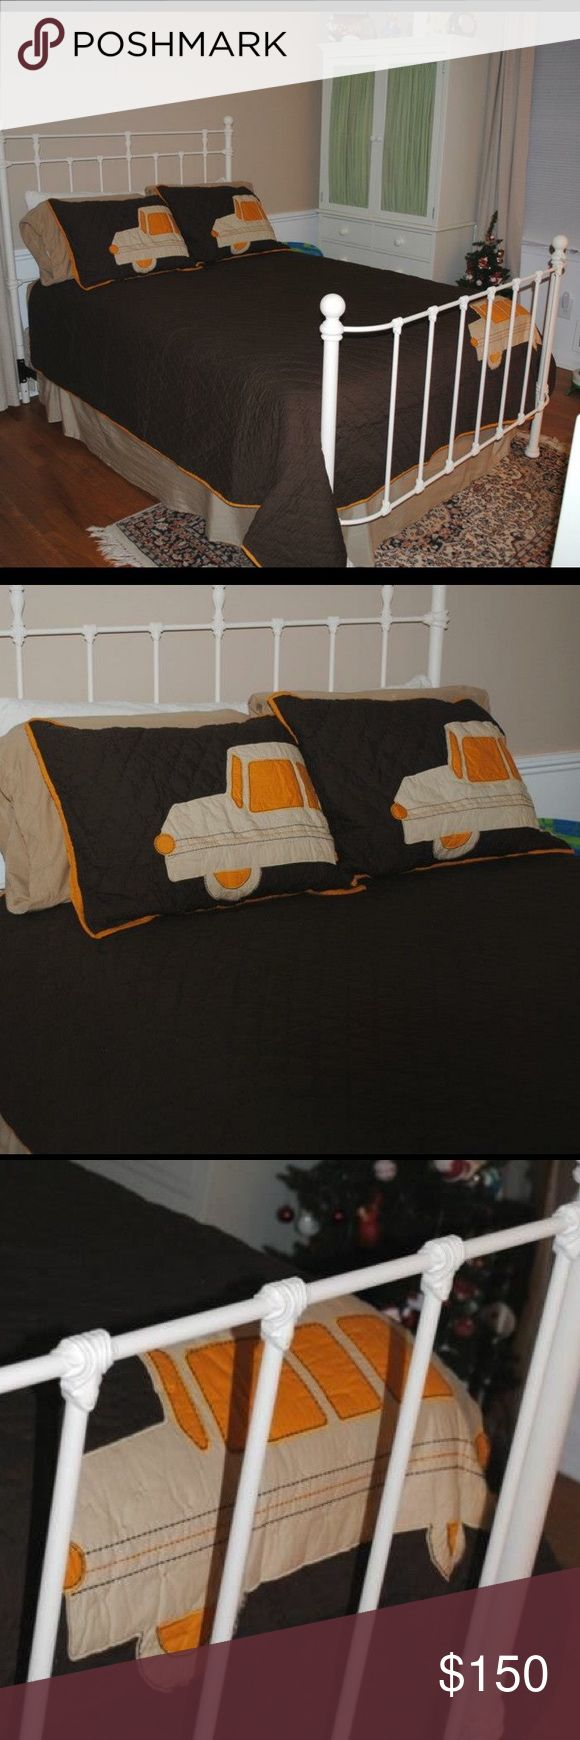 Pottery Barn Kids Bedding and Pillow Shams Potter Barn Kids quilted quilt and pillow shams with truck detail. Fits a standard/full size bed. In excellent condition. Has matching third pillow sham. The colors are brown, tan, and orange. Pottery Barn Kids Other